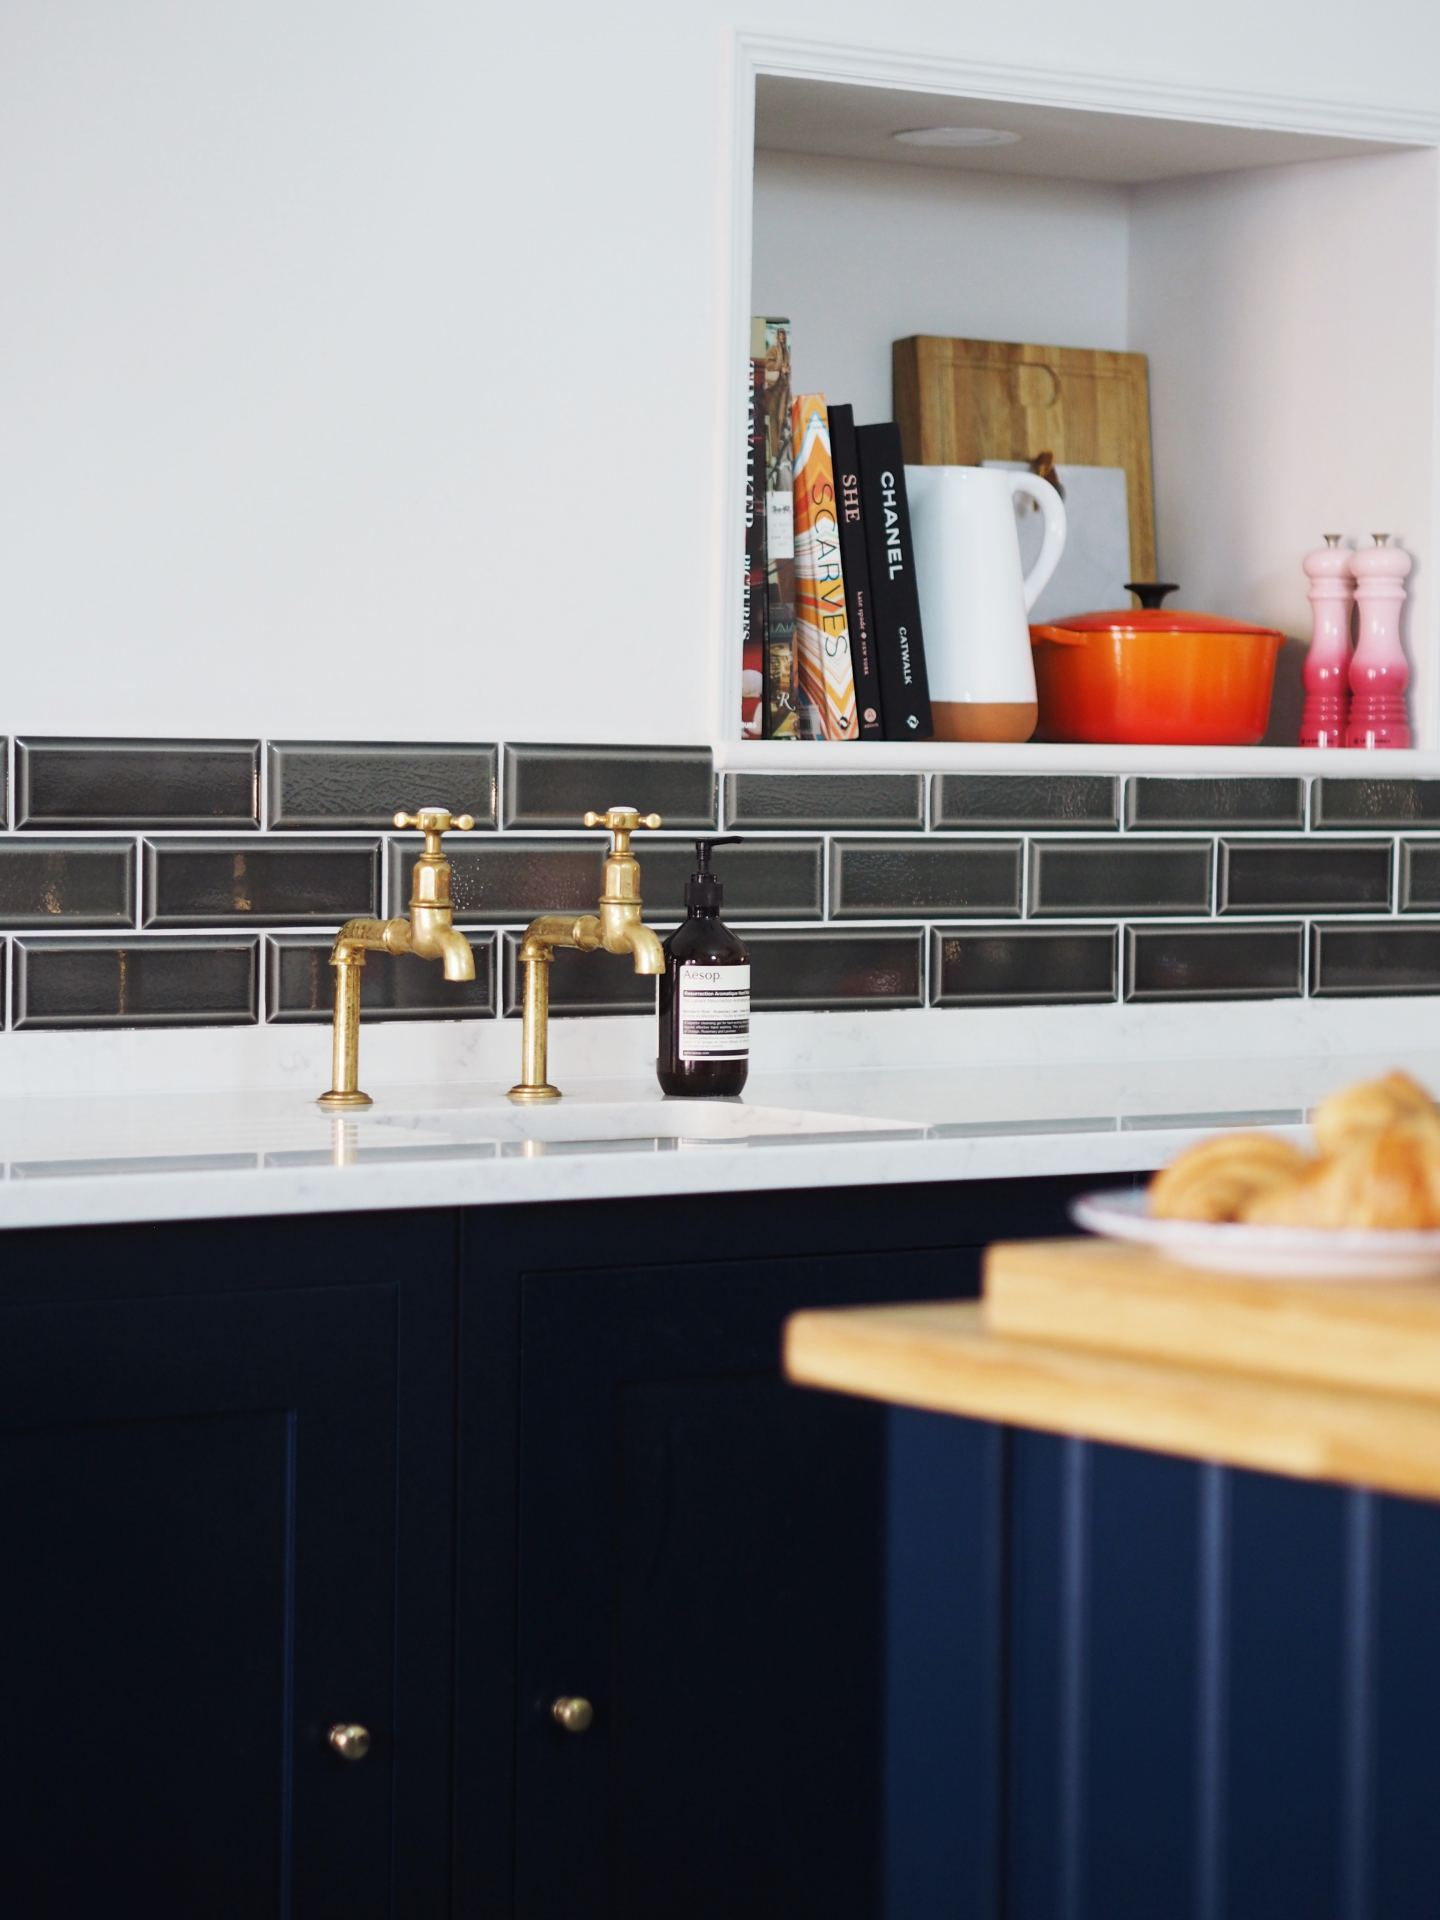 harvey jones kitchen navy blue fashion for lunch blog kitchen copper taps